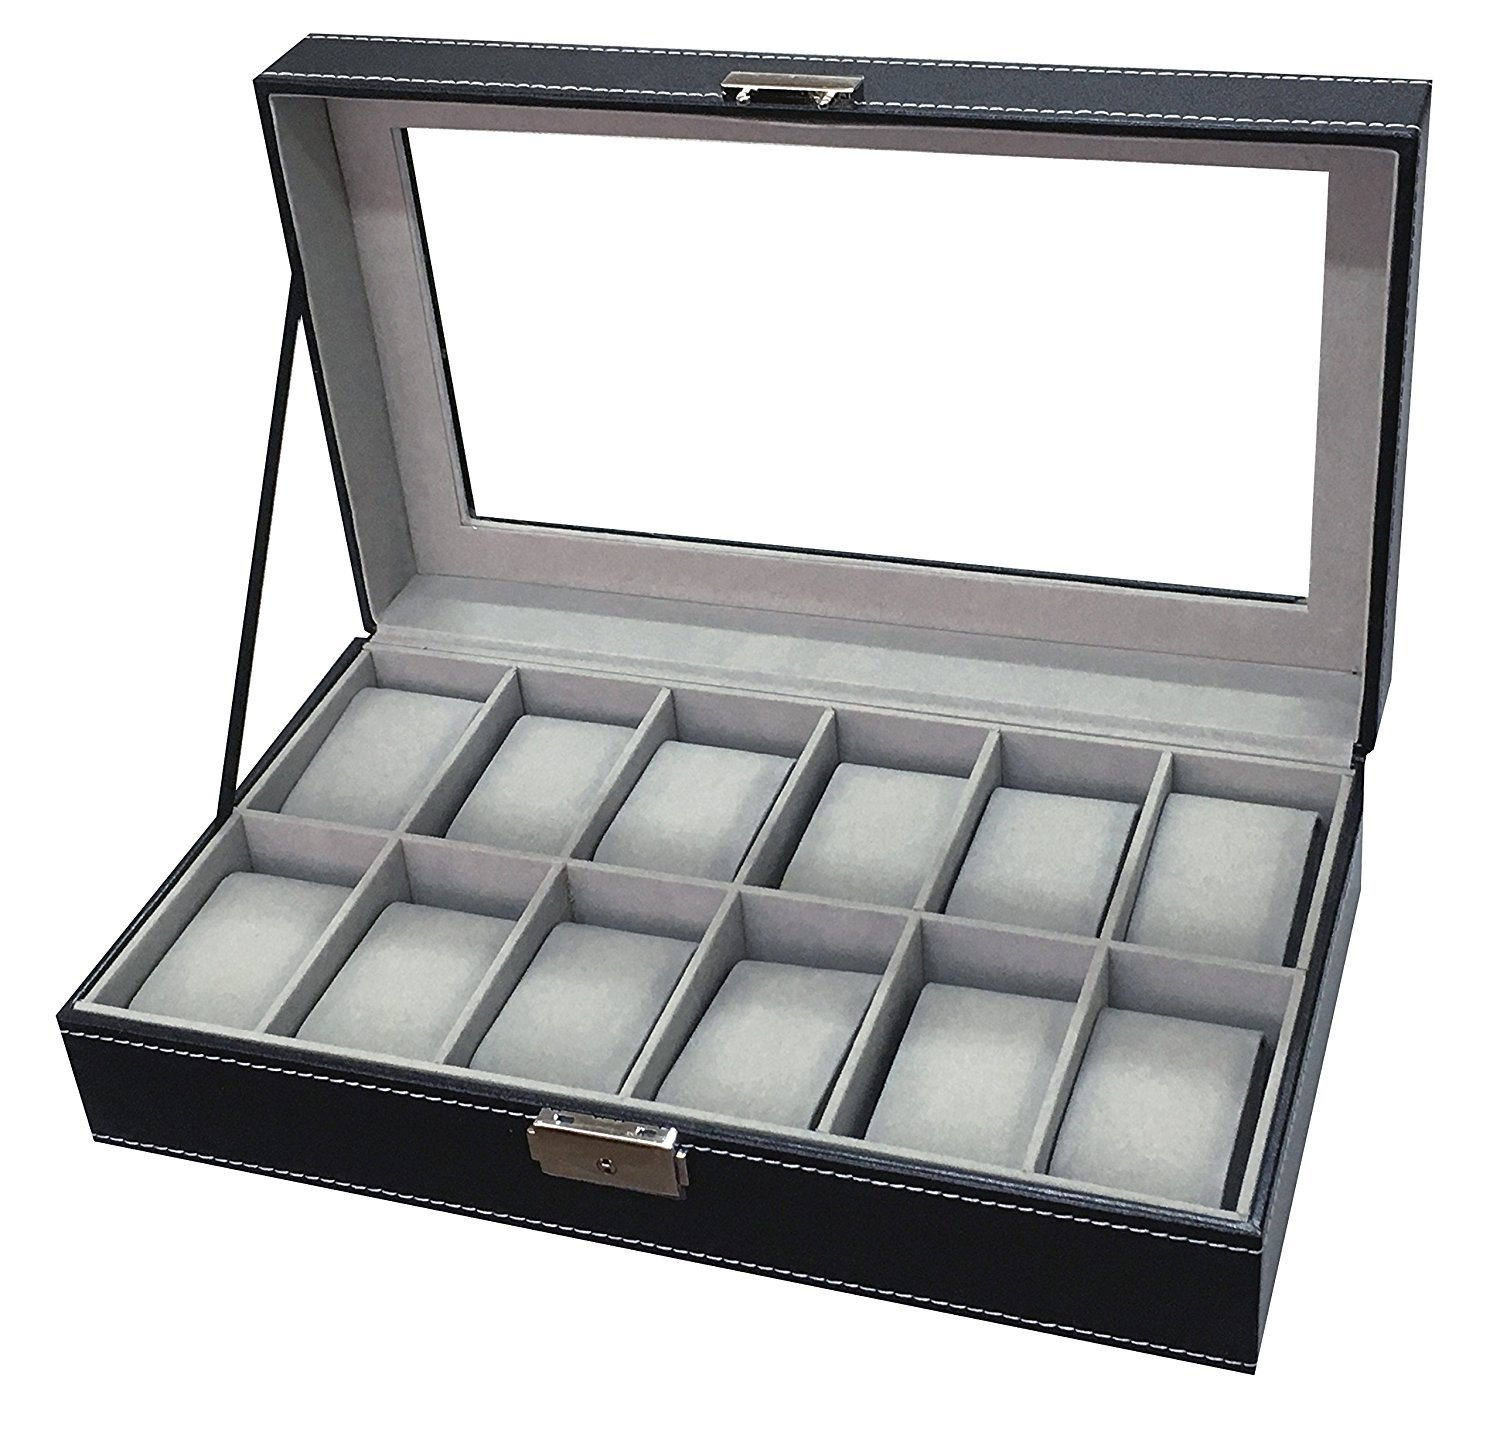 Manzoo 12 Mens Large Watch Box Black Pu Leather Display Glass Top Jewelry Case Organizer Box